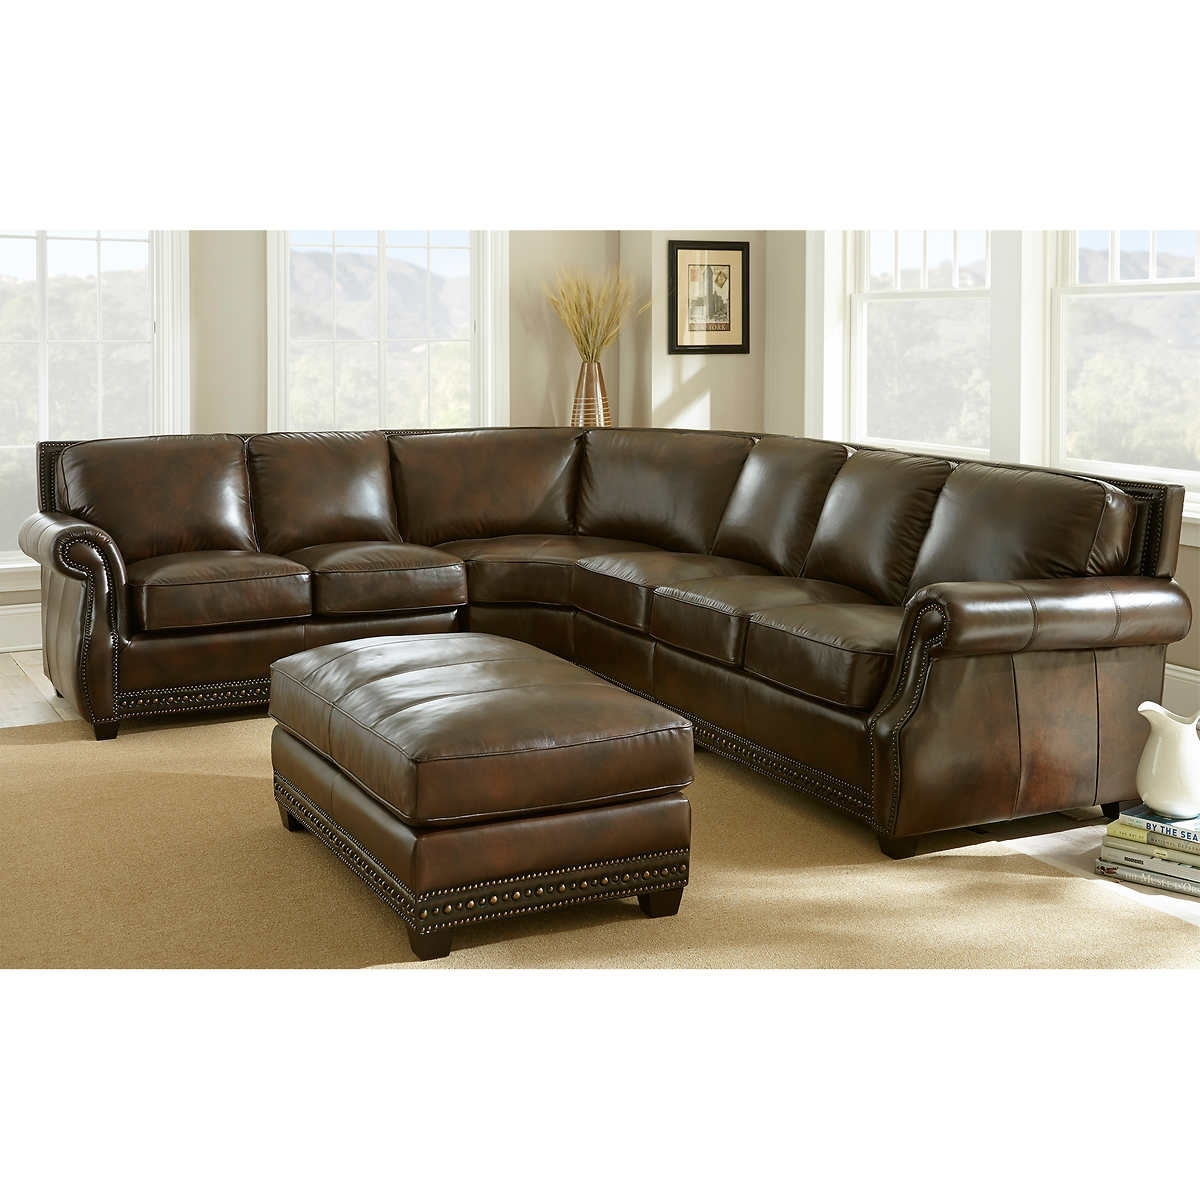 Fancy Leather Sectional Sofa With Recliner 30 On Sofas And Couches Within Leather Sectional Sofas (View 7 of 10)